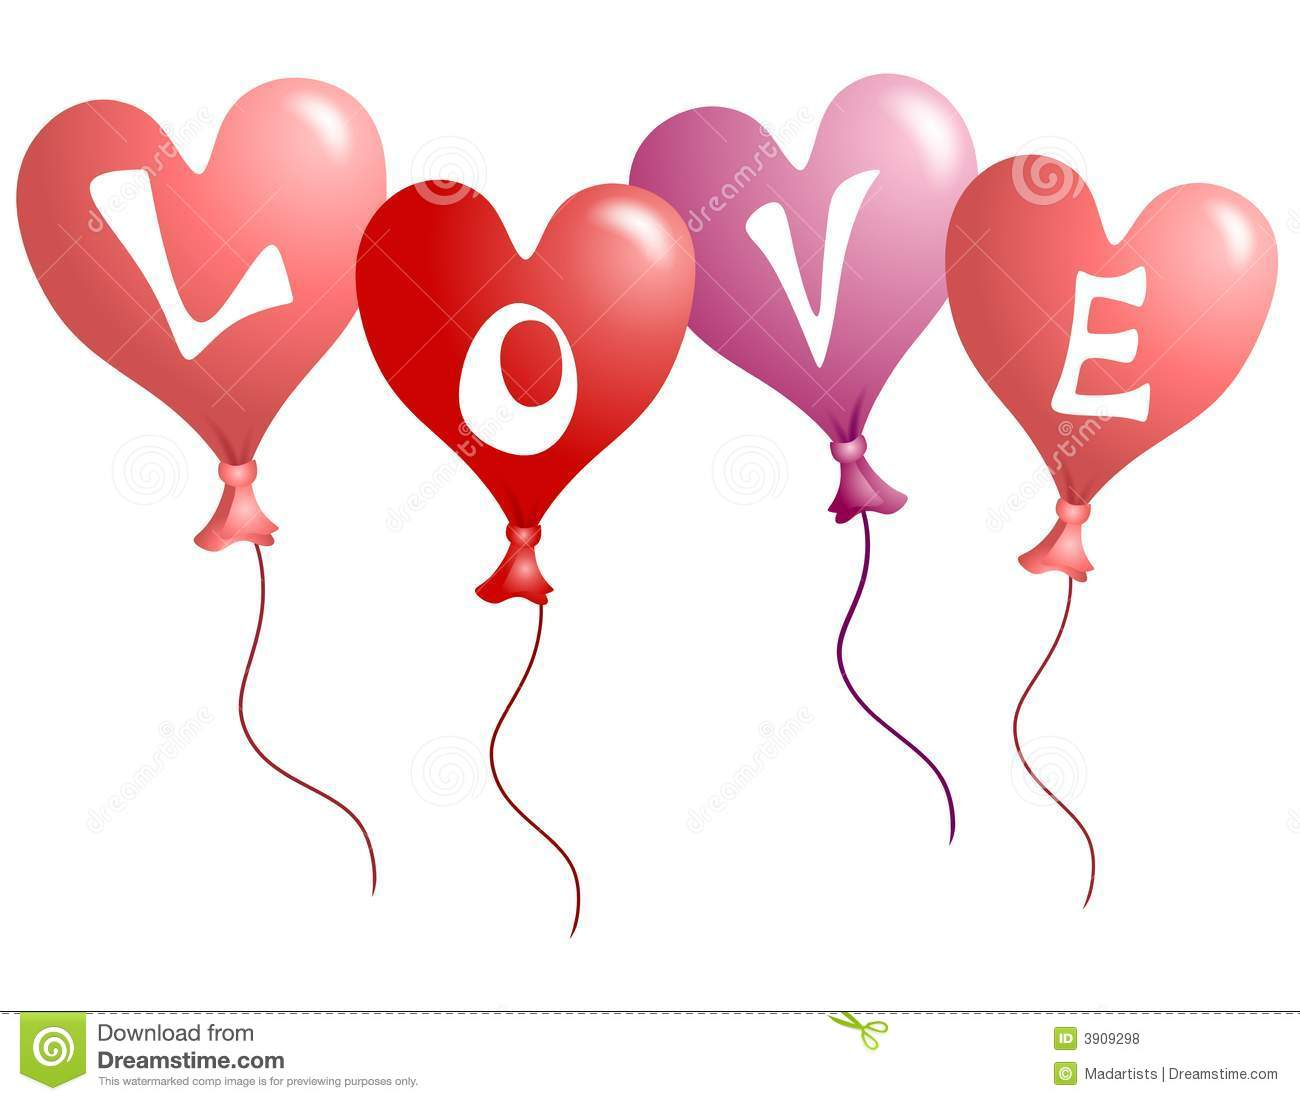 Balloons clipart valentines. Day